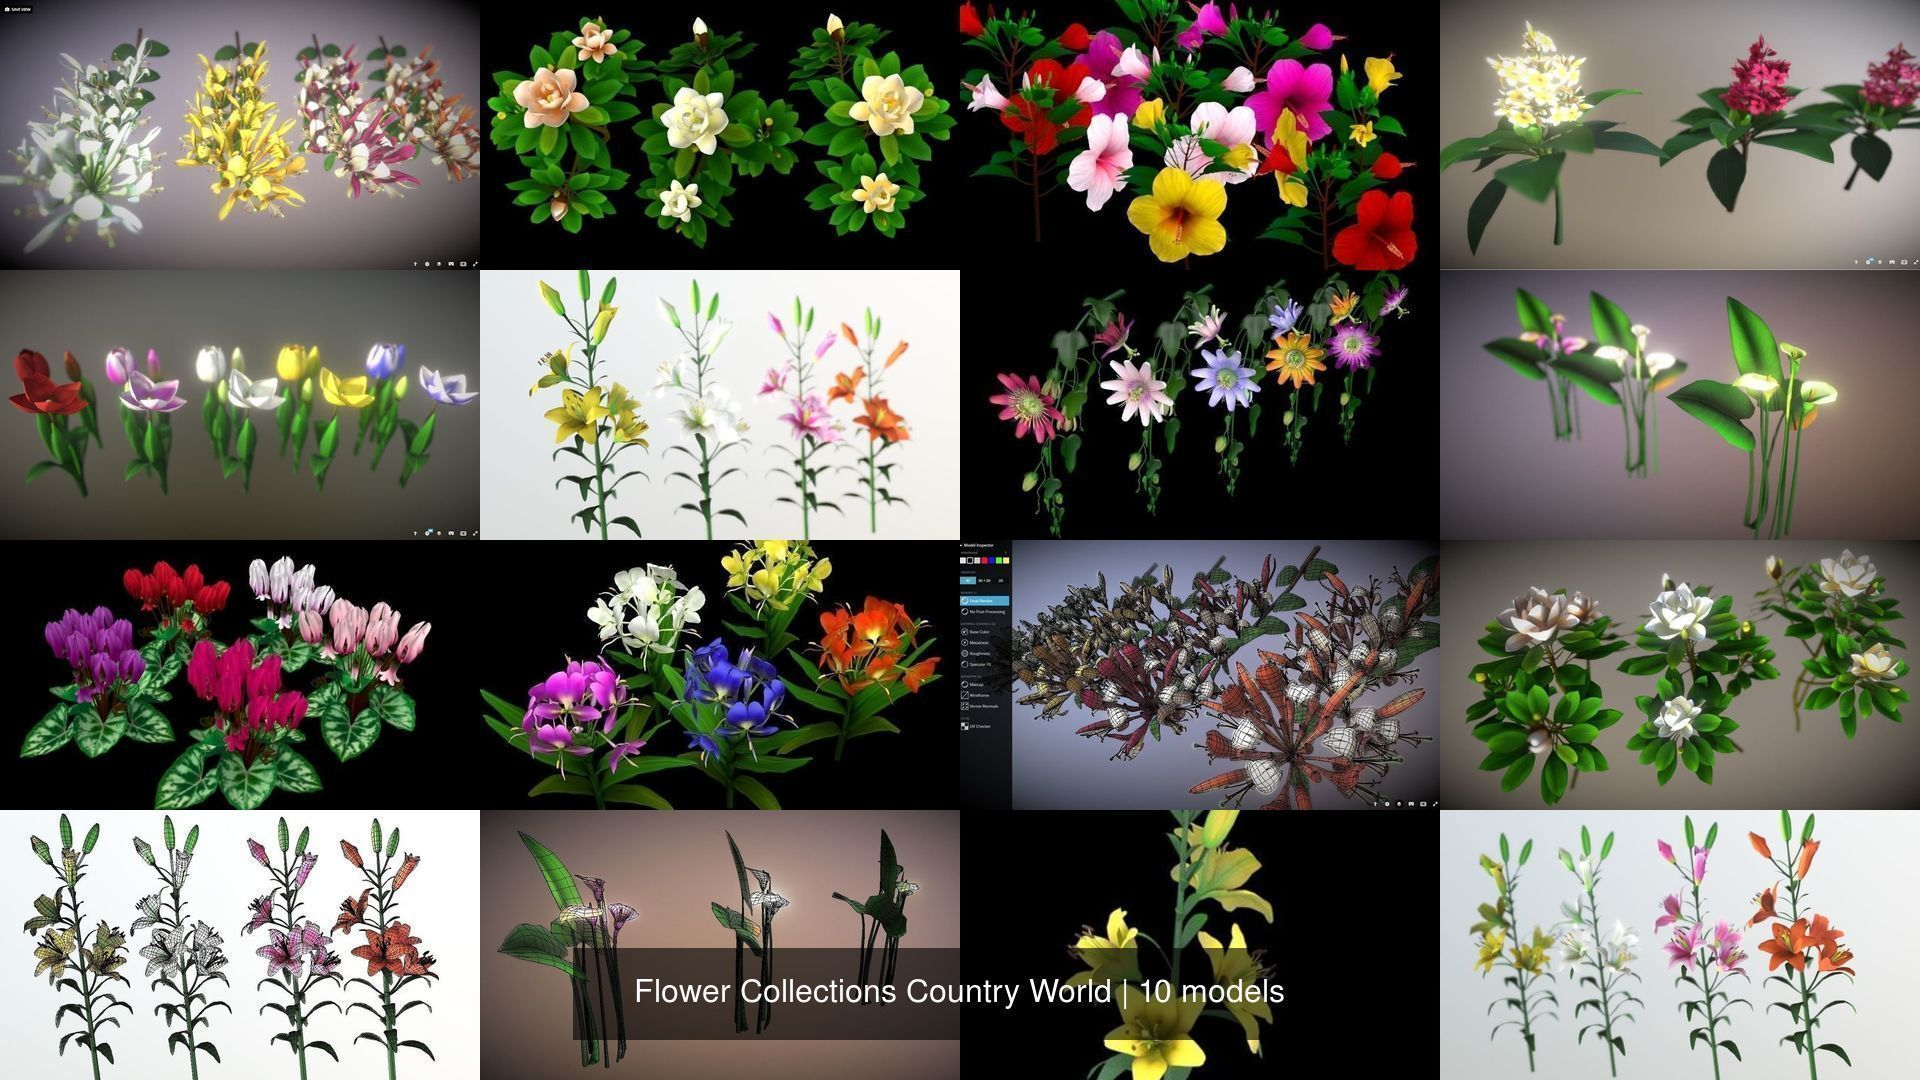 Flower Collections Country World